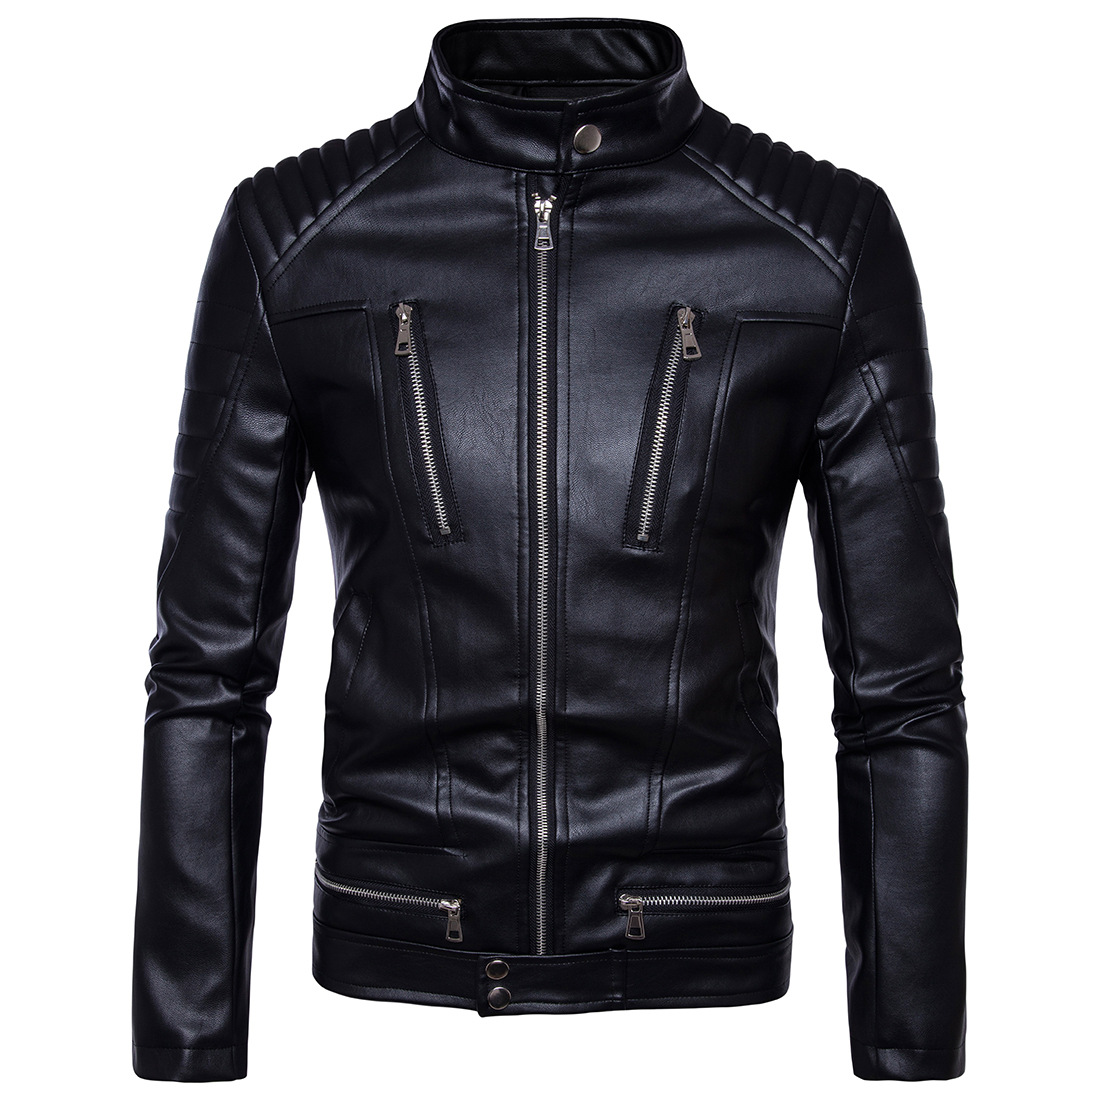 Mens Bomber Jackets Fashion Men Faux Leather Coat Zipper Overcoat Motor Jacket Motorcycle Bikers Punk  Man Brand Top Colthing